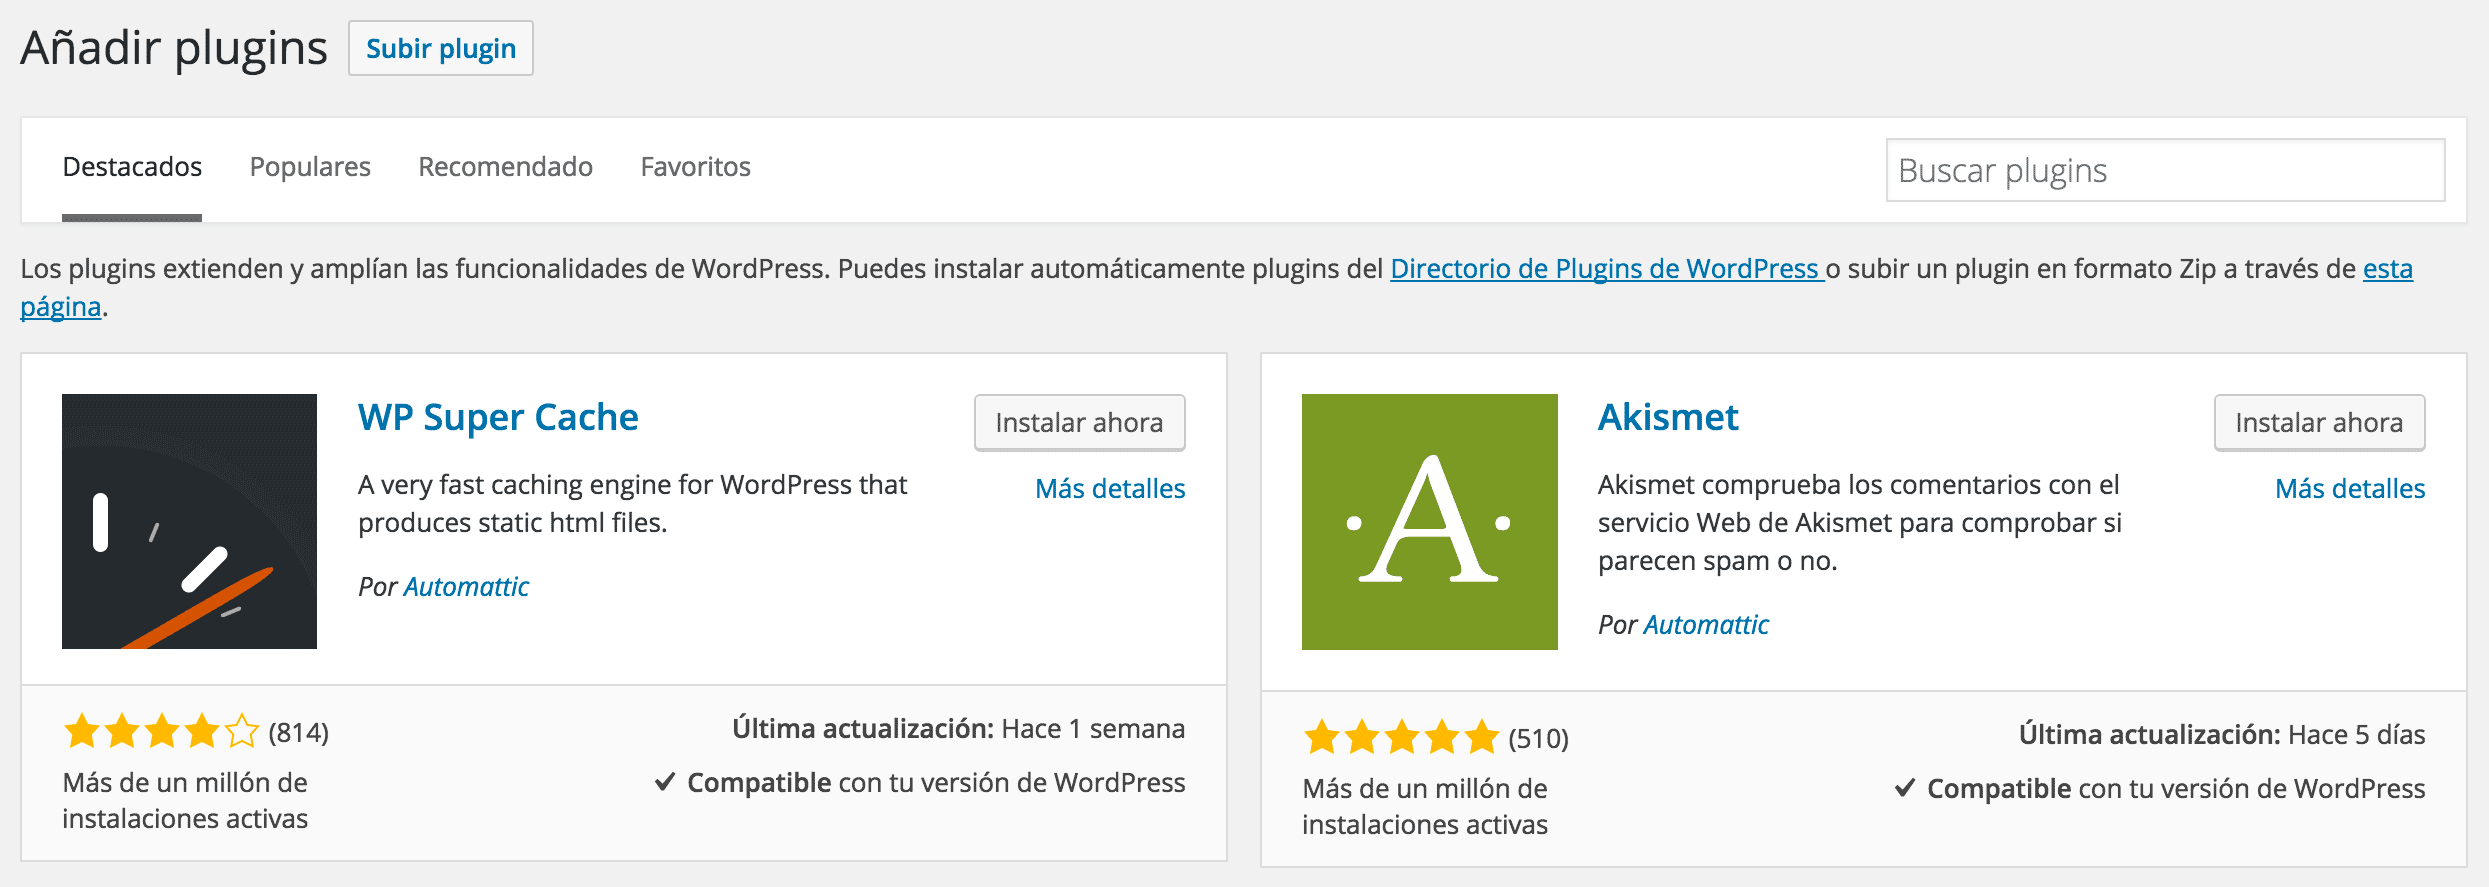 Repositorio público de plugins en WordPress